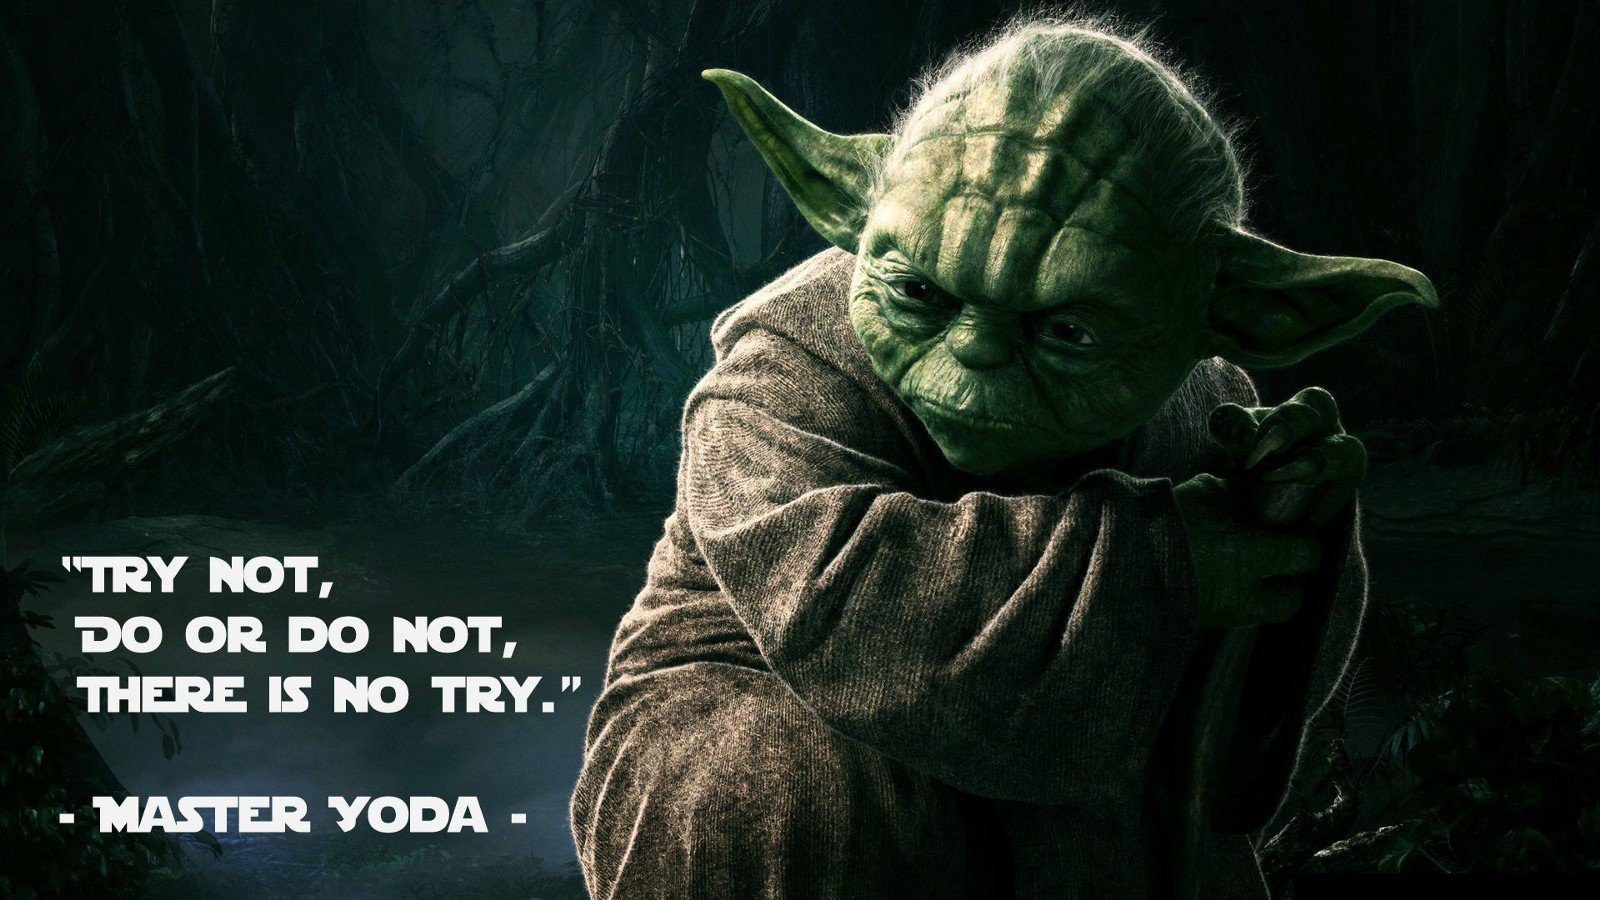 Try not, do or do not, there is no try - Master yoda